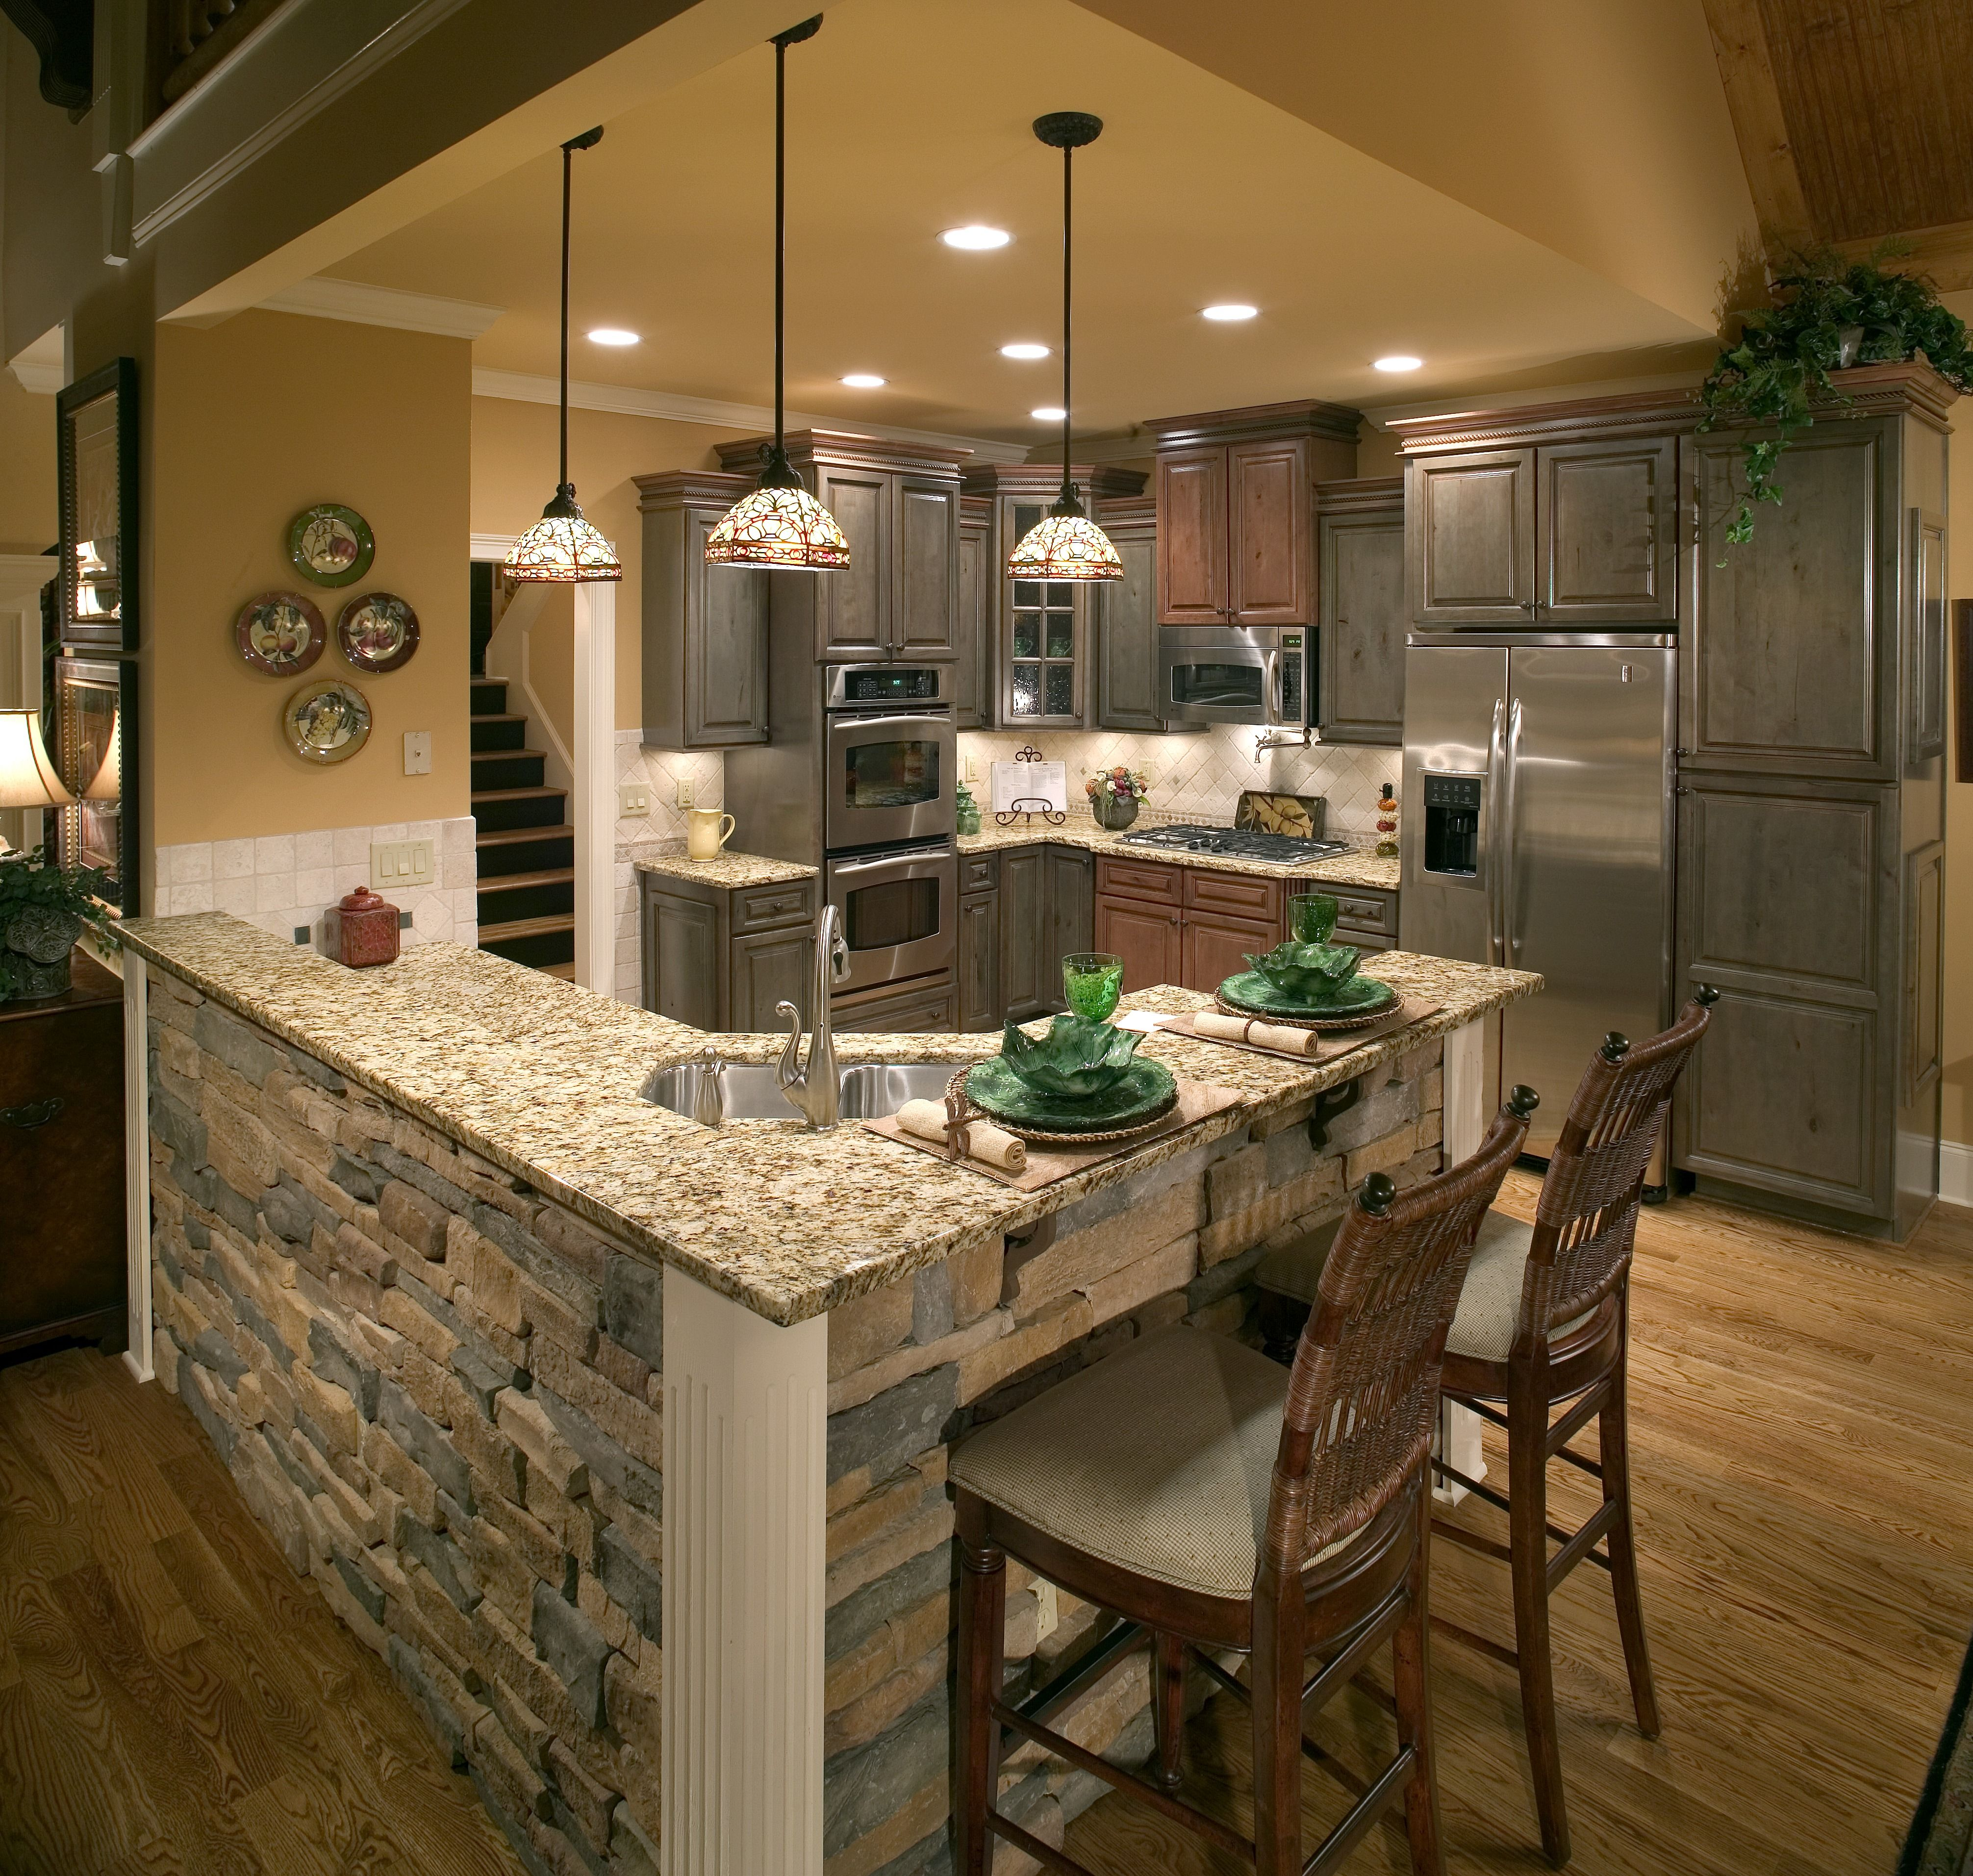 Kitchen Remodeling Guide To Kitchen Remodels Improvenet Kitchen Remodel Cost Kitchen Remodel Small Stone Kitchen Island